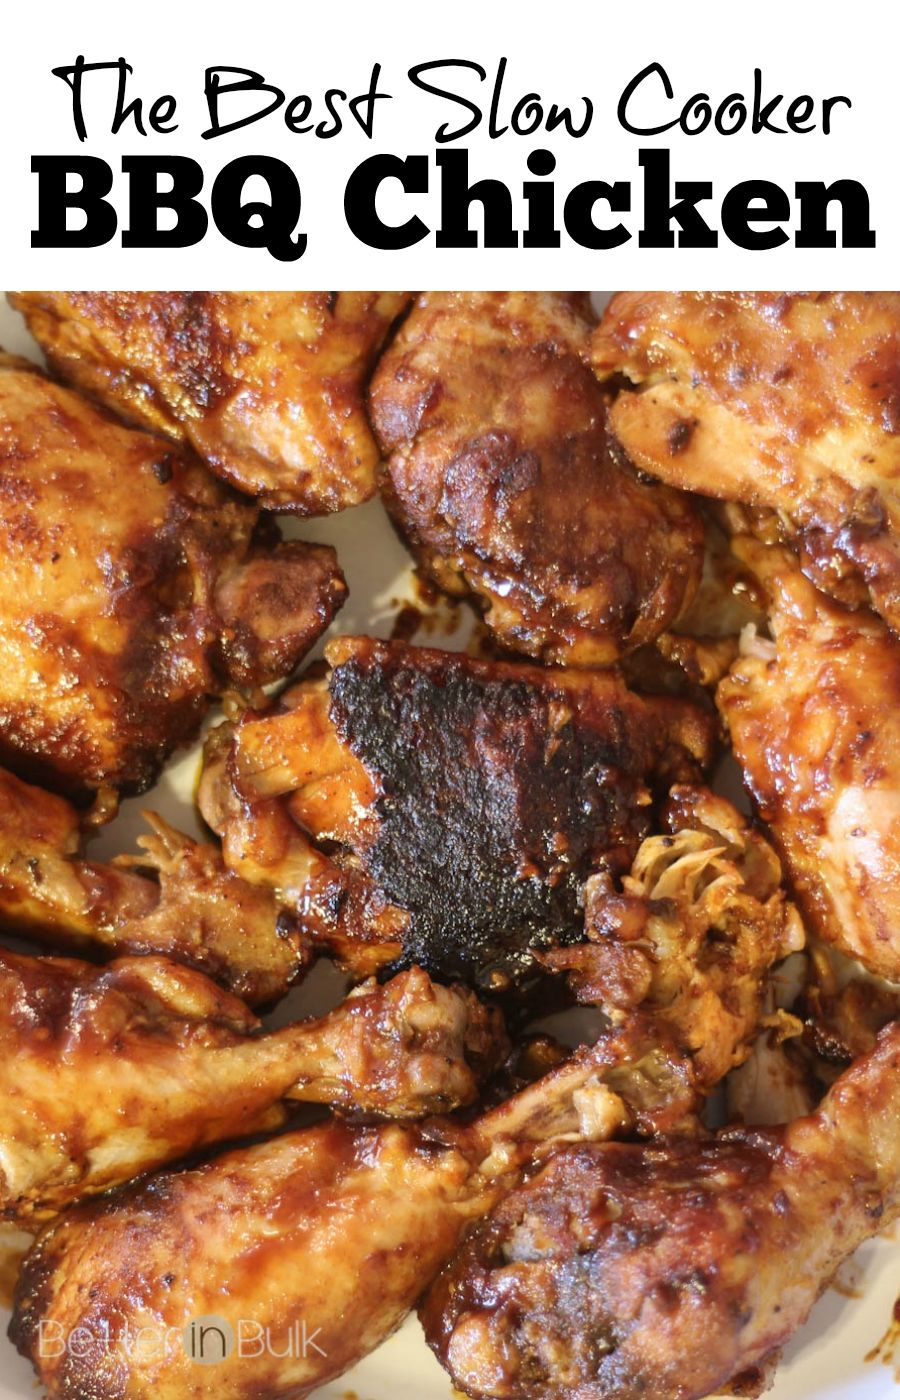 The Best Slow Cooker Bbq Chicken Recipe Slow Cooker